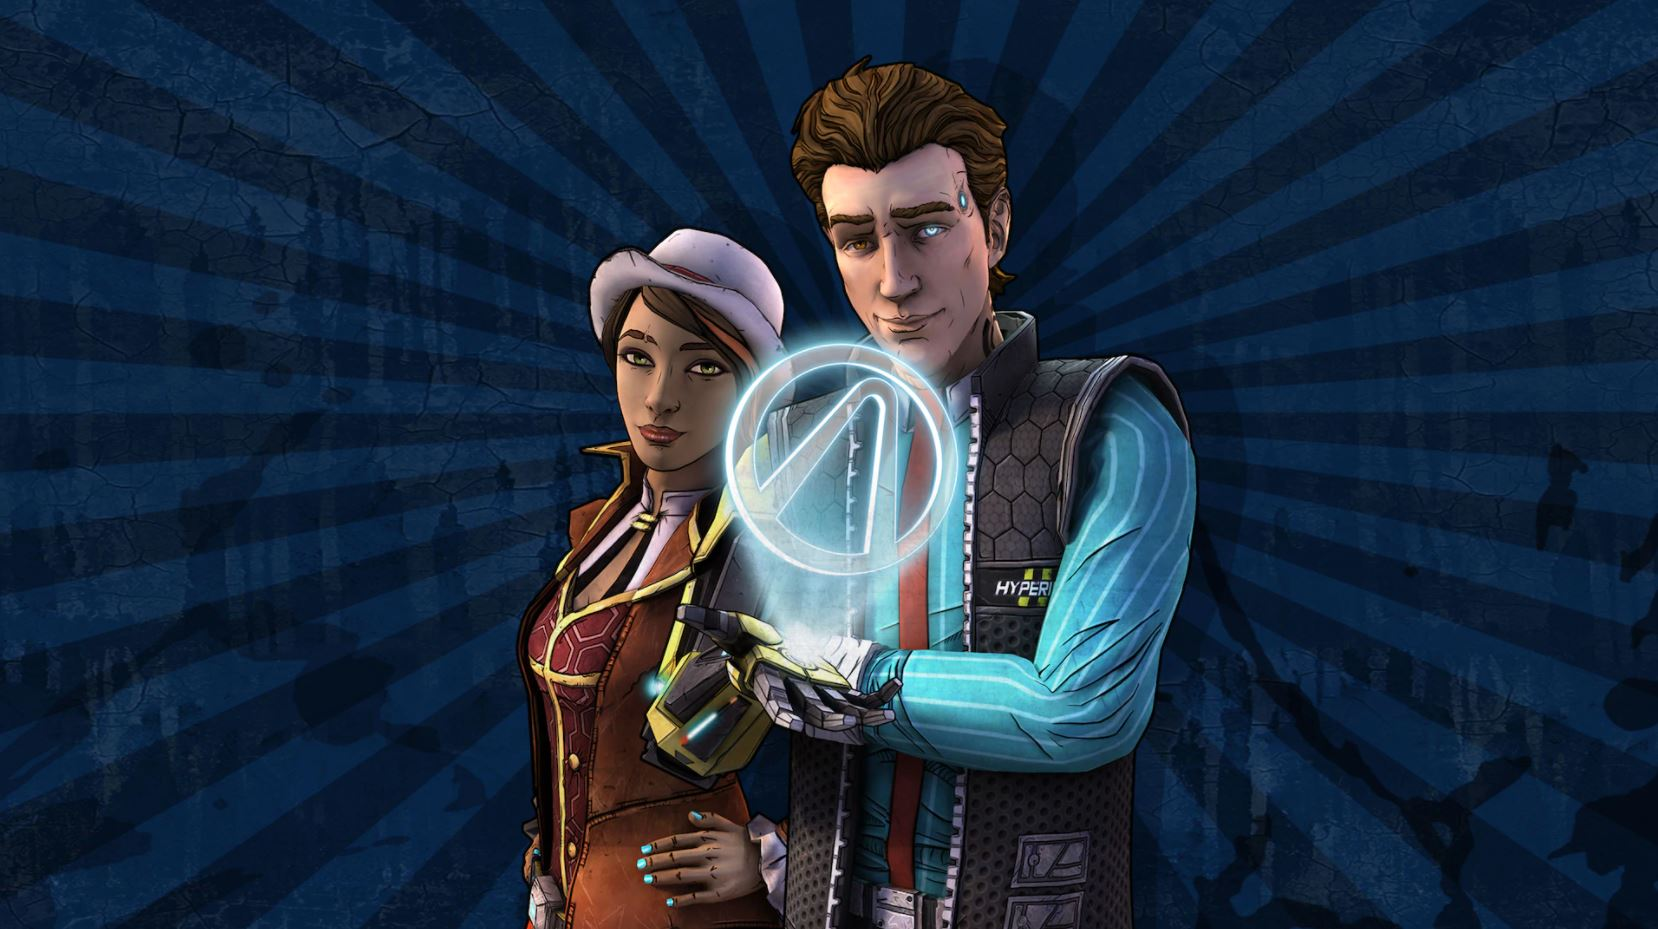 tales-from-the-borderlands-returns-to-the-playstation-store-on-ps4-costs-19-99-15-99